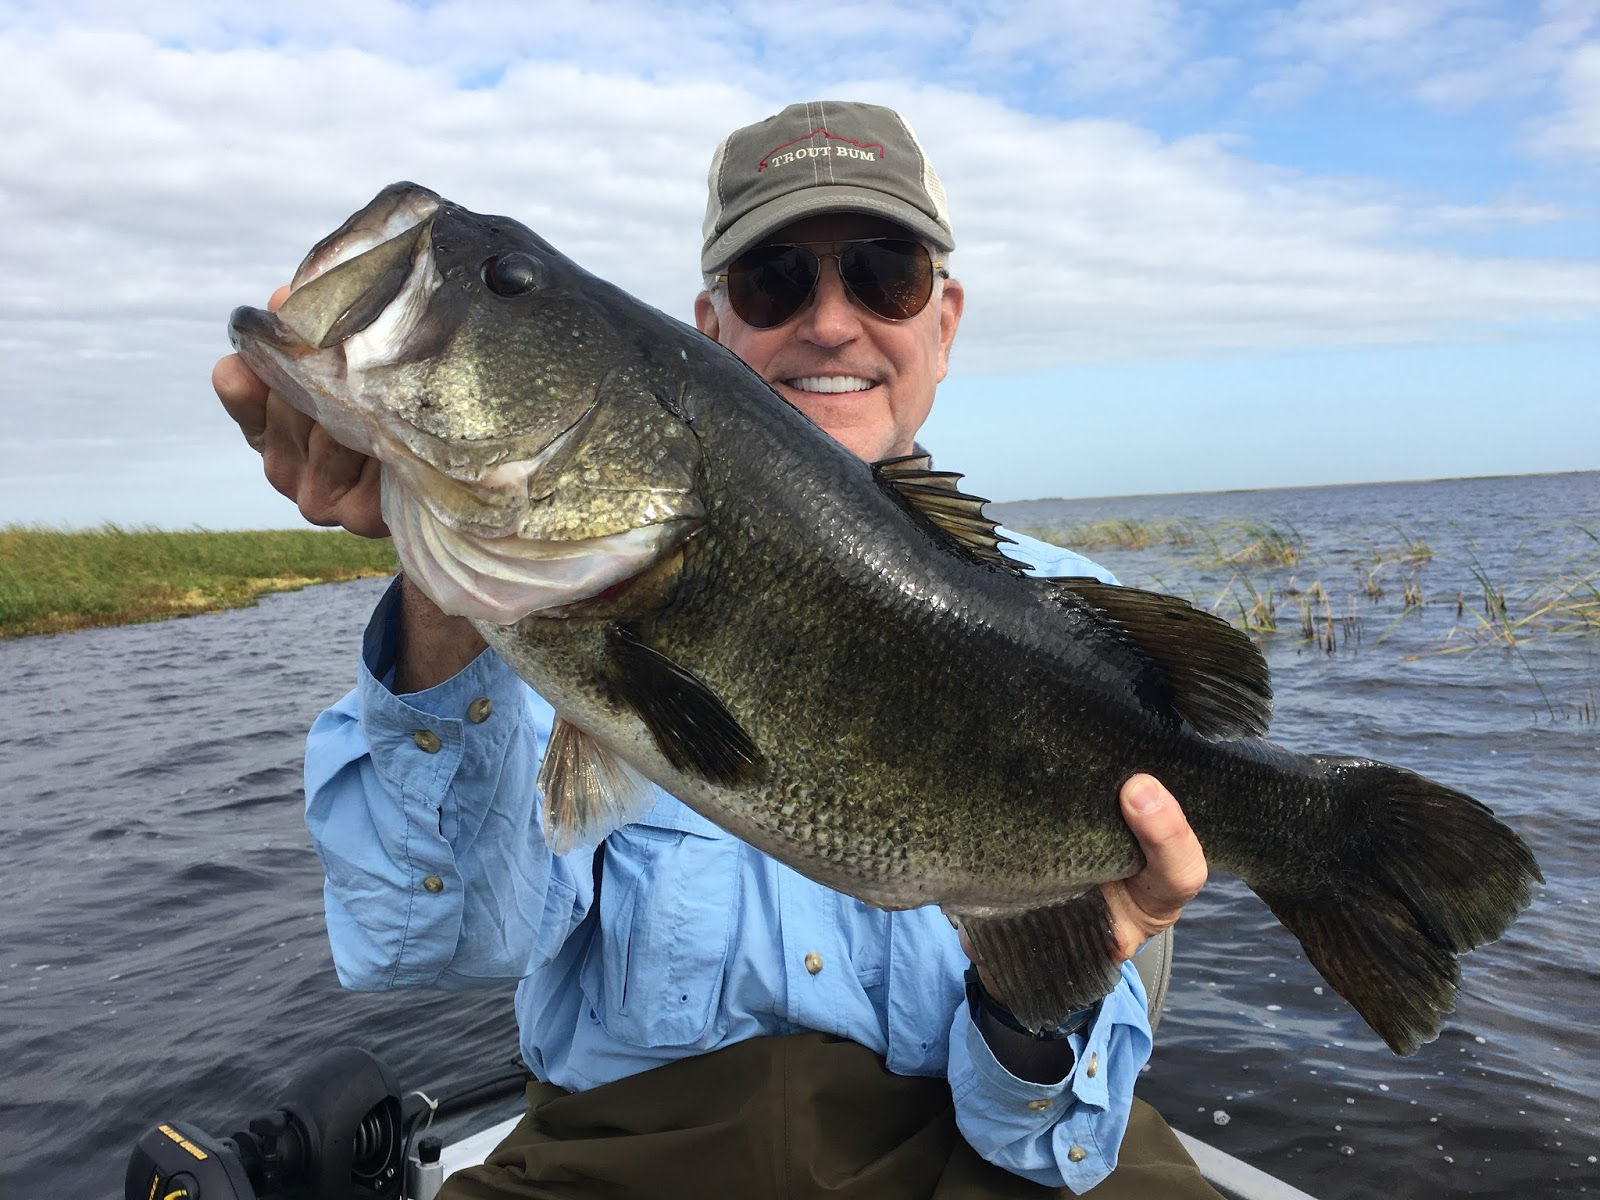 Okeechobee fishing reports 10 29 2017 lake okeechobee for Lake okeechobee fishing guides